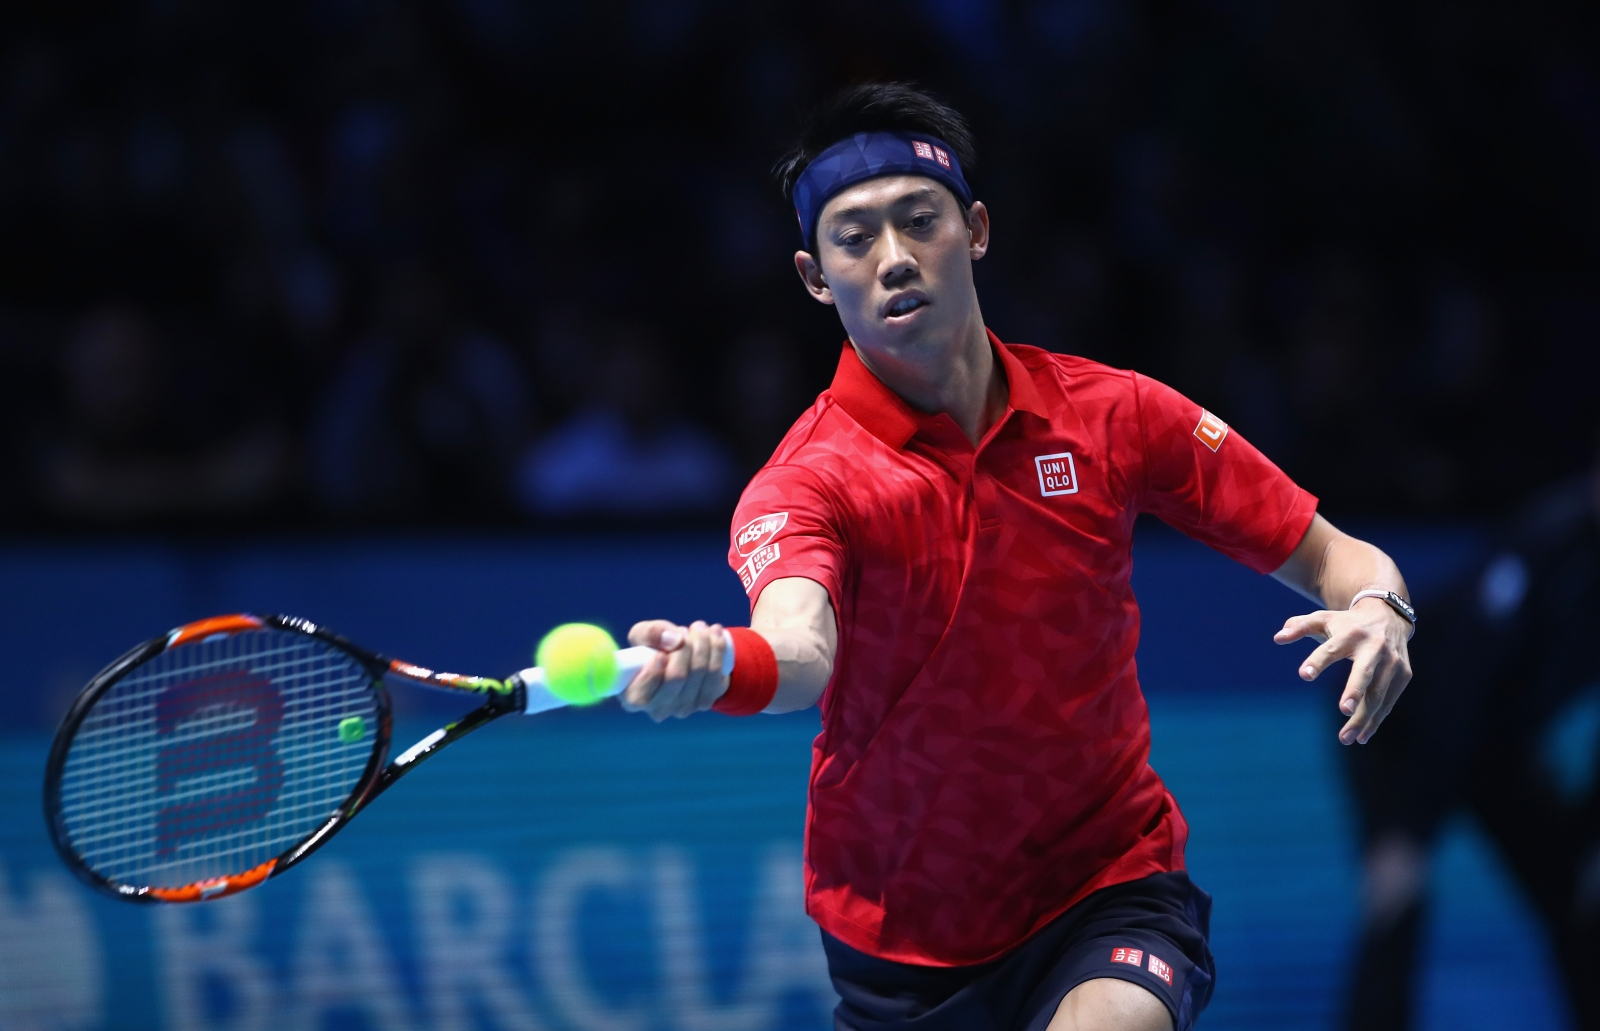 Andy Murray Vs Kei Nishikori Barclays ATP World Tour Finals 2016 Where To Watch Live Preview